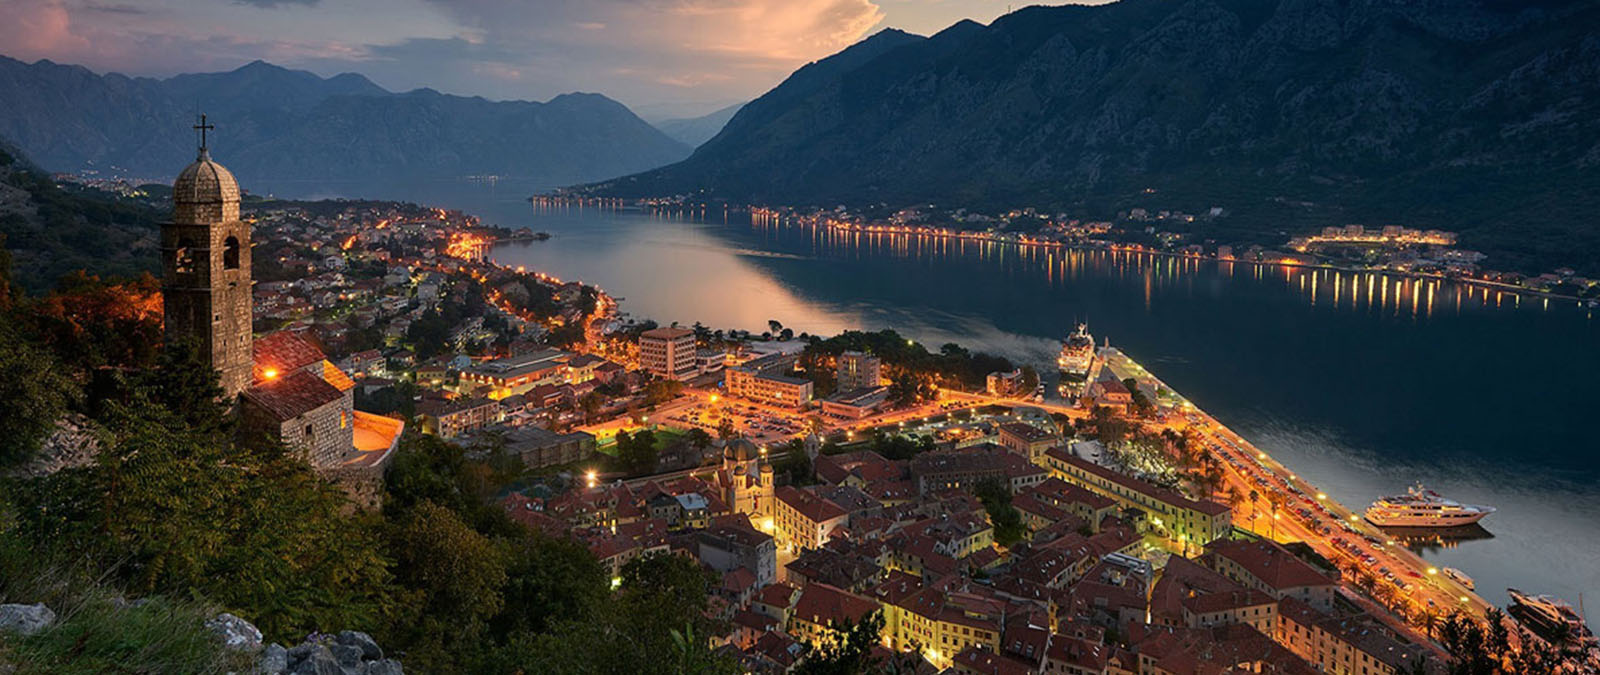 Montenegro is the smallest ex-Yugoslav Republic country but one of the most beautiful and promising.